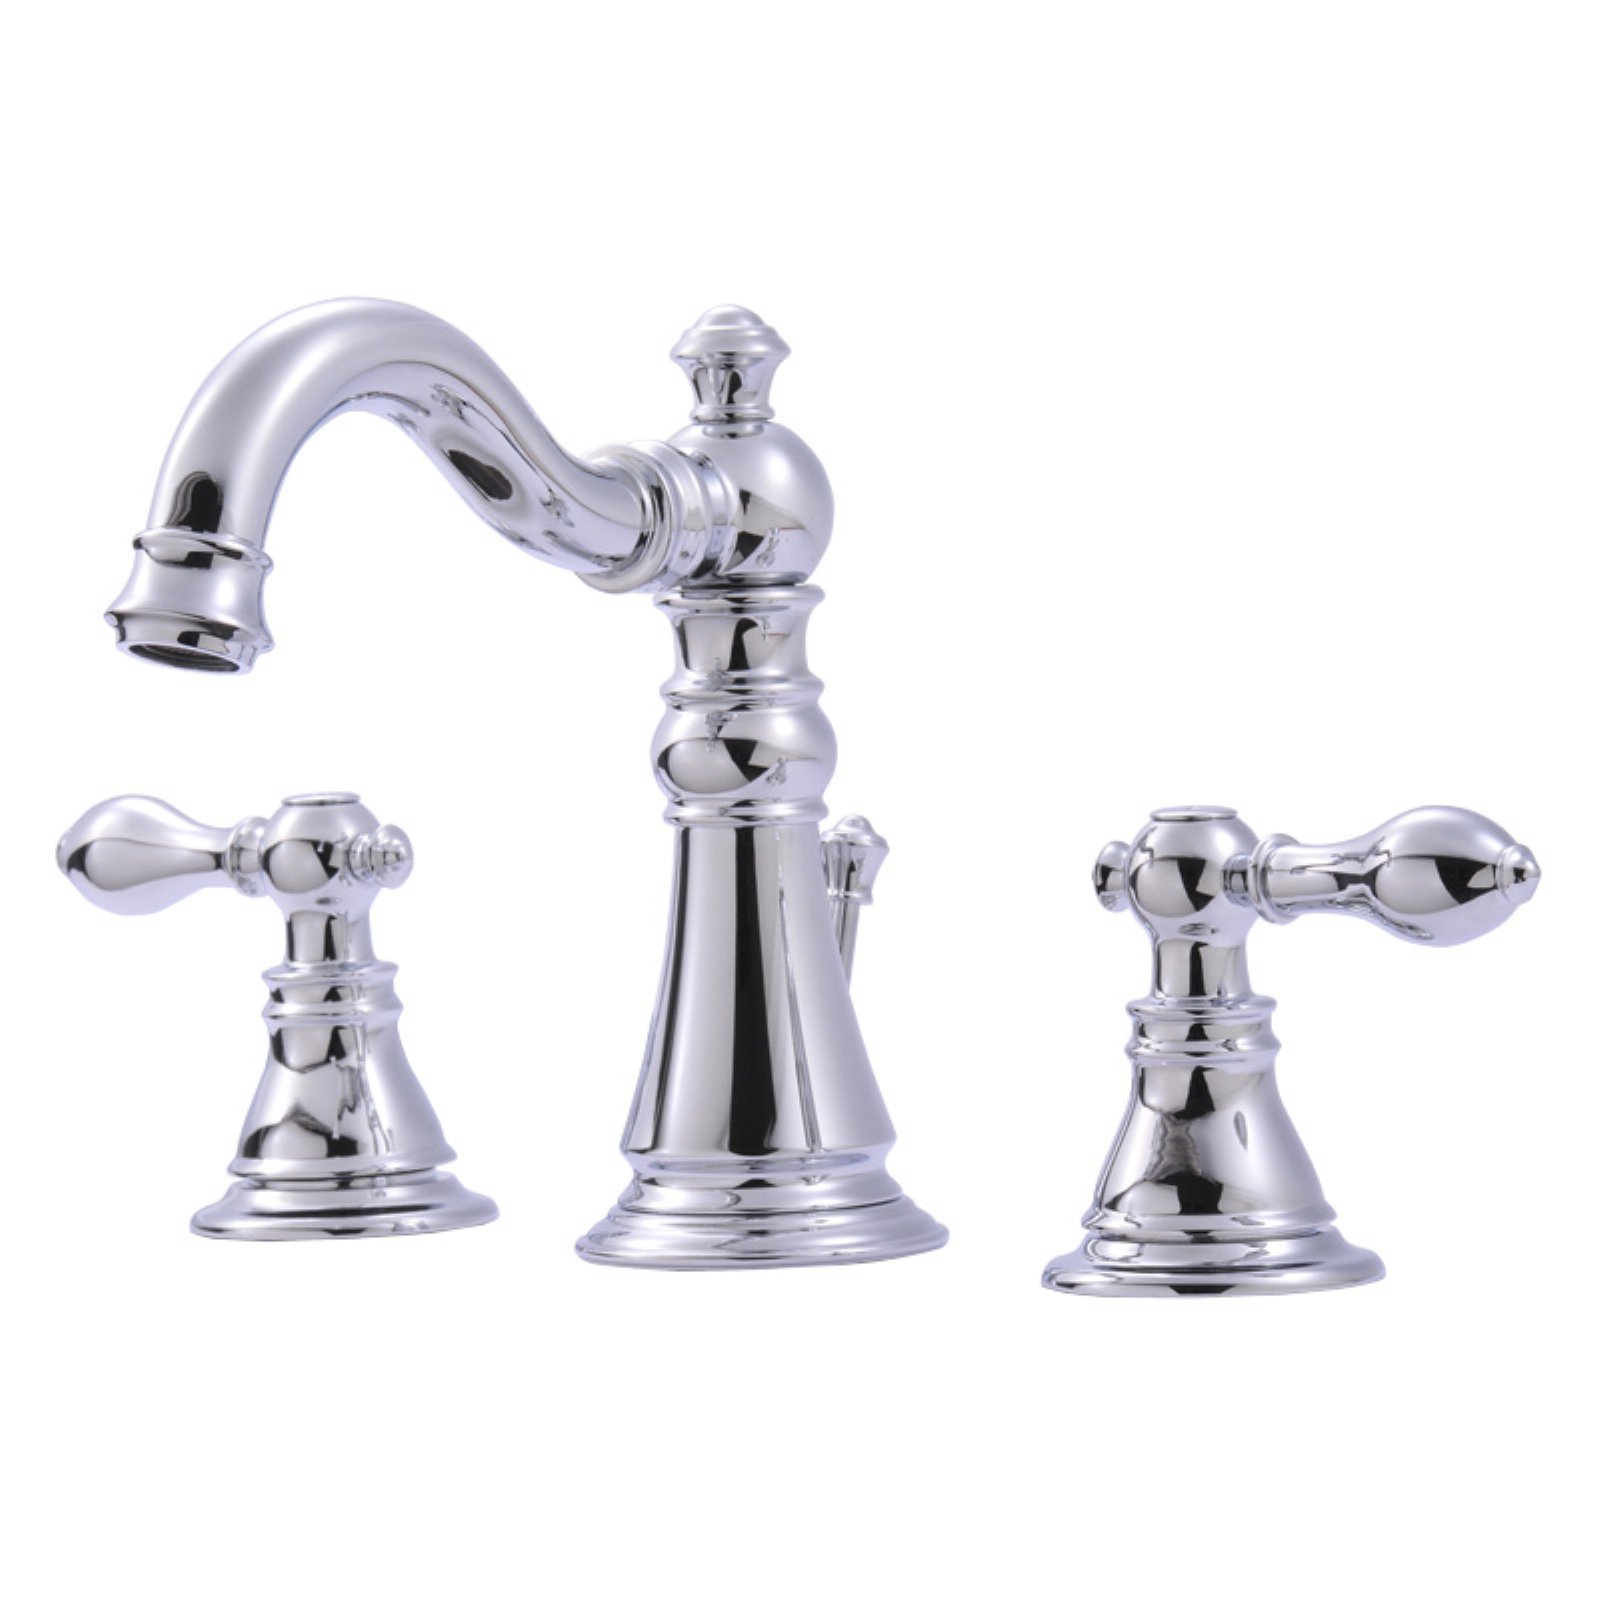 ultra faucets uf55110 2handle chrome lavatory faucet with popup drain